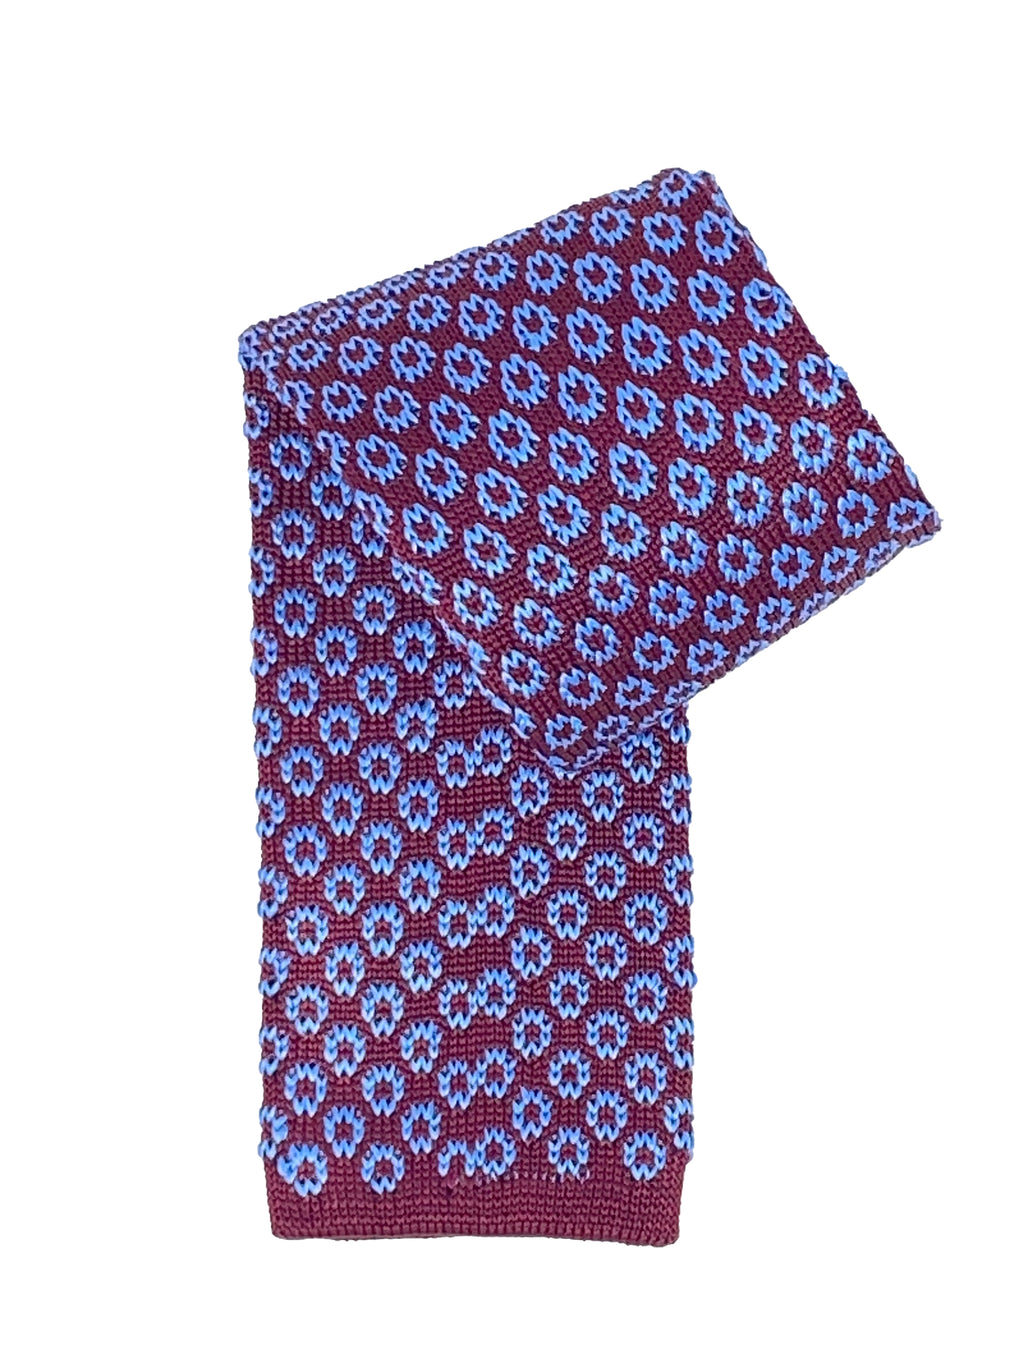 RED/BLUE KNIT TIE - ELI•ROSCOE